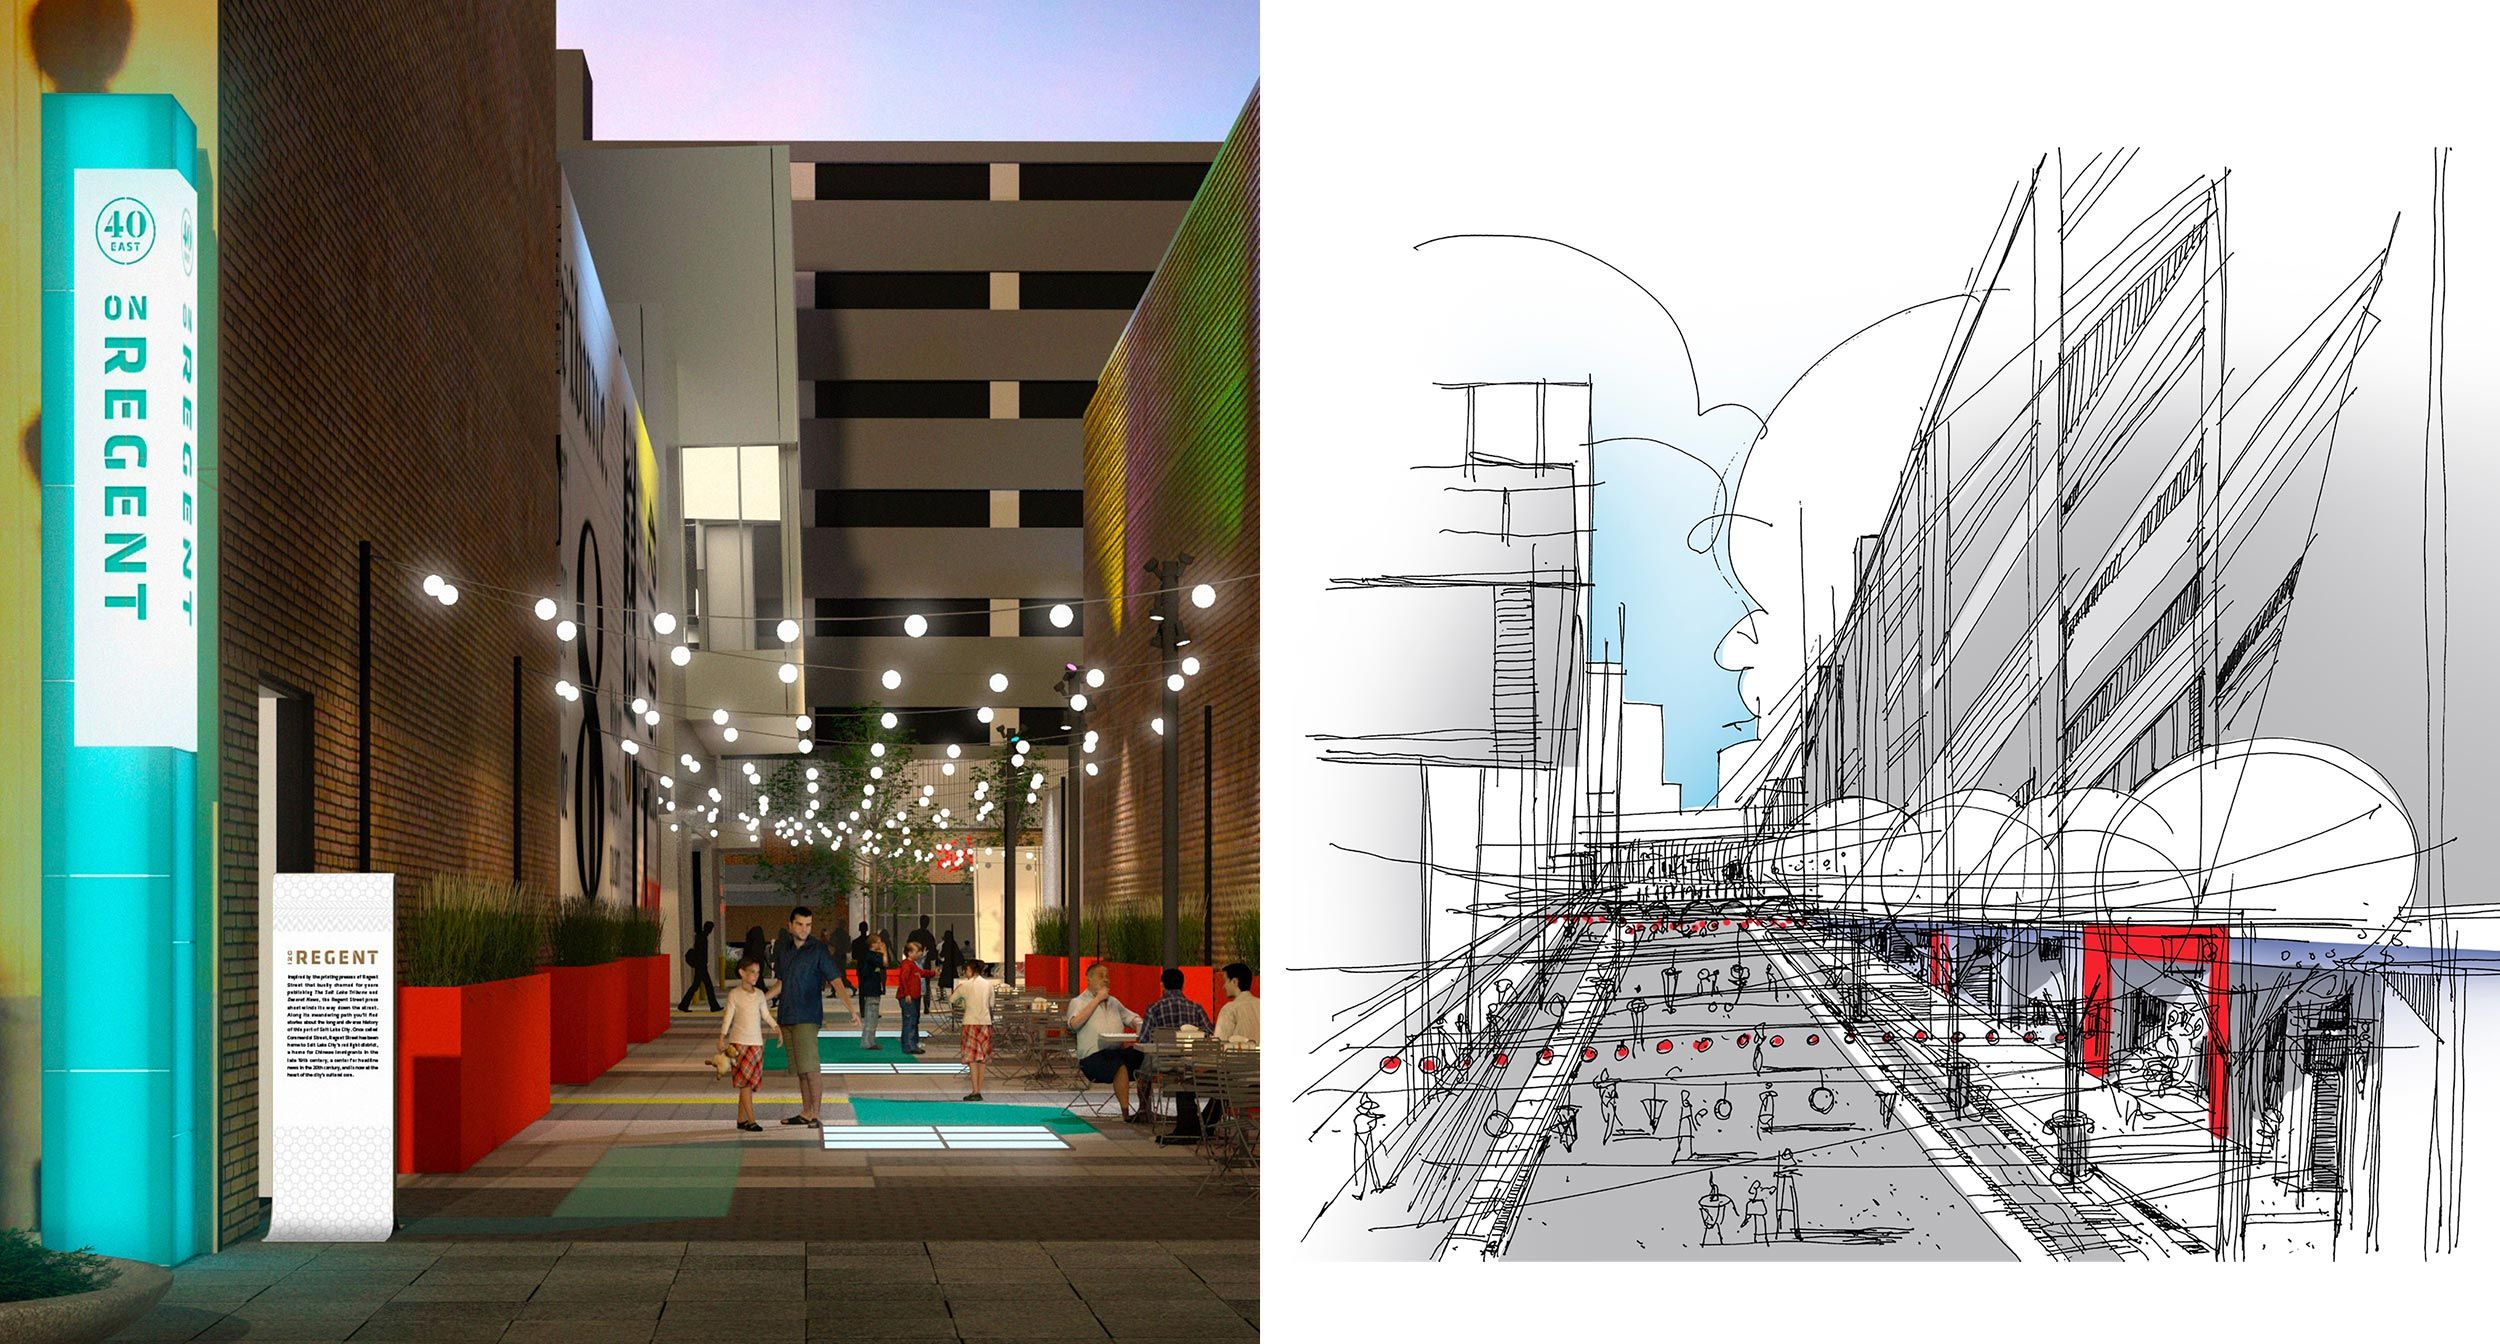 Rendering and sketch of part of Regent Street with Cafe Lights